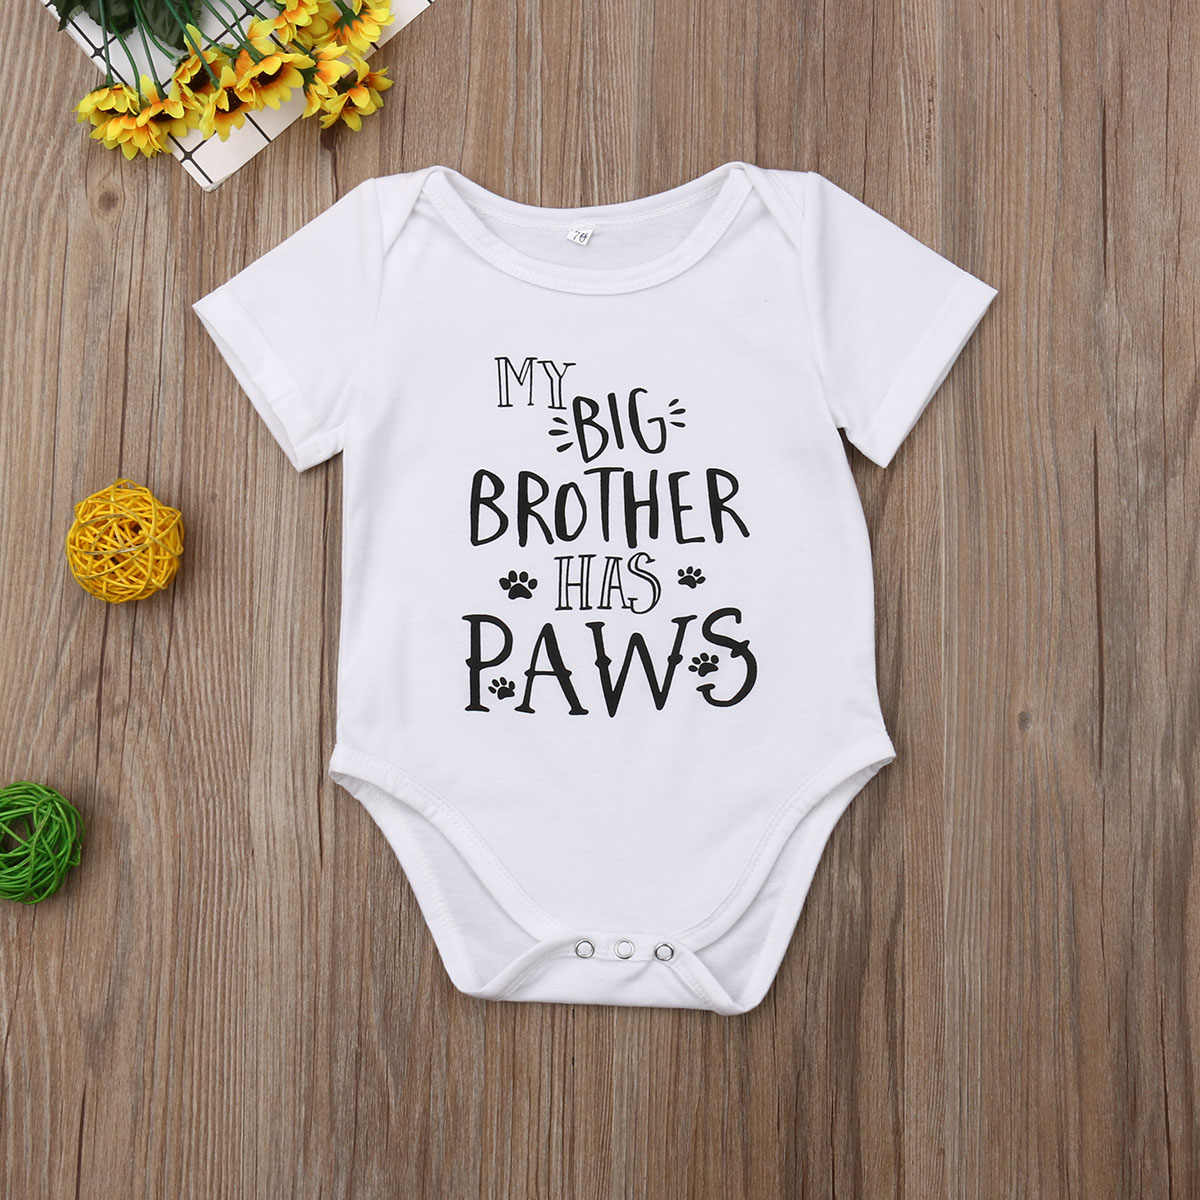 2019 Baby Summer Clothing Cue Infant Baby Boy Girl Bodysuit Letter Print Short Sleeve White Jumpsuit Clothes Match Outfits 0-18M